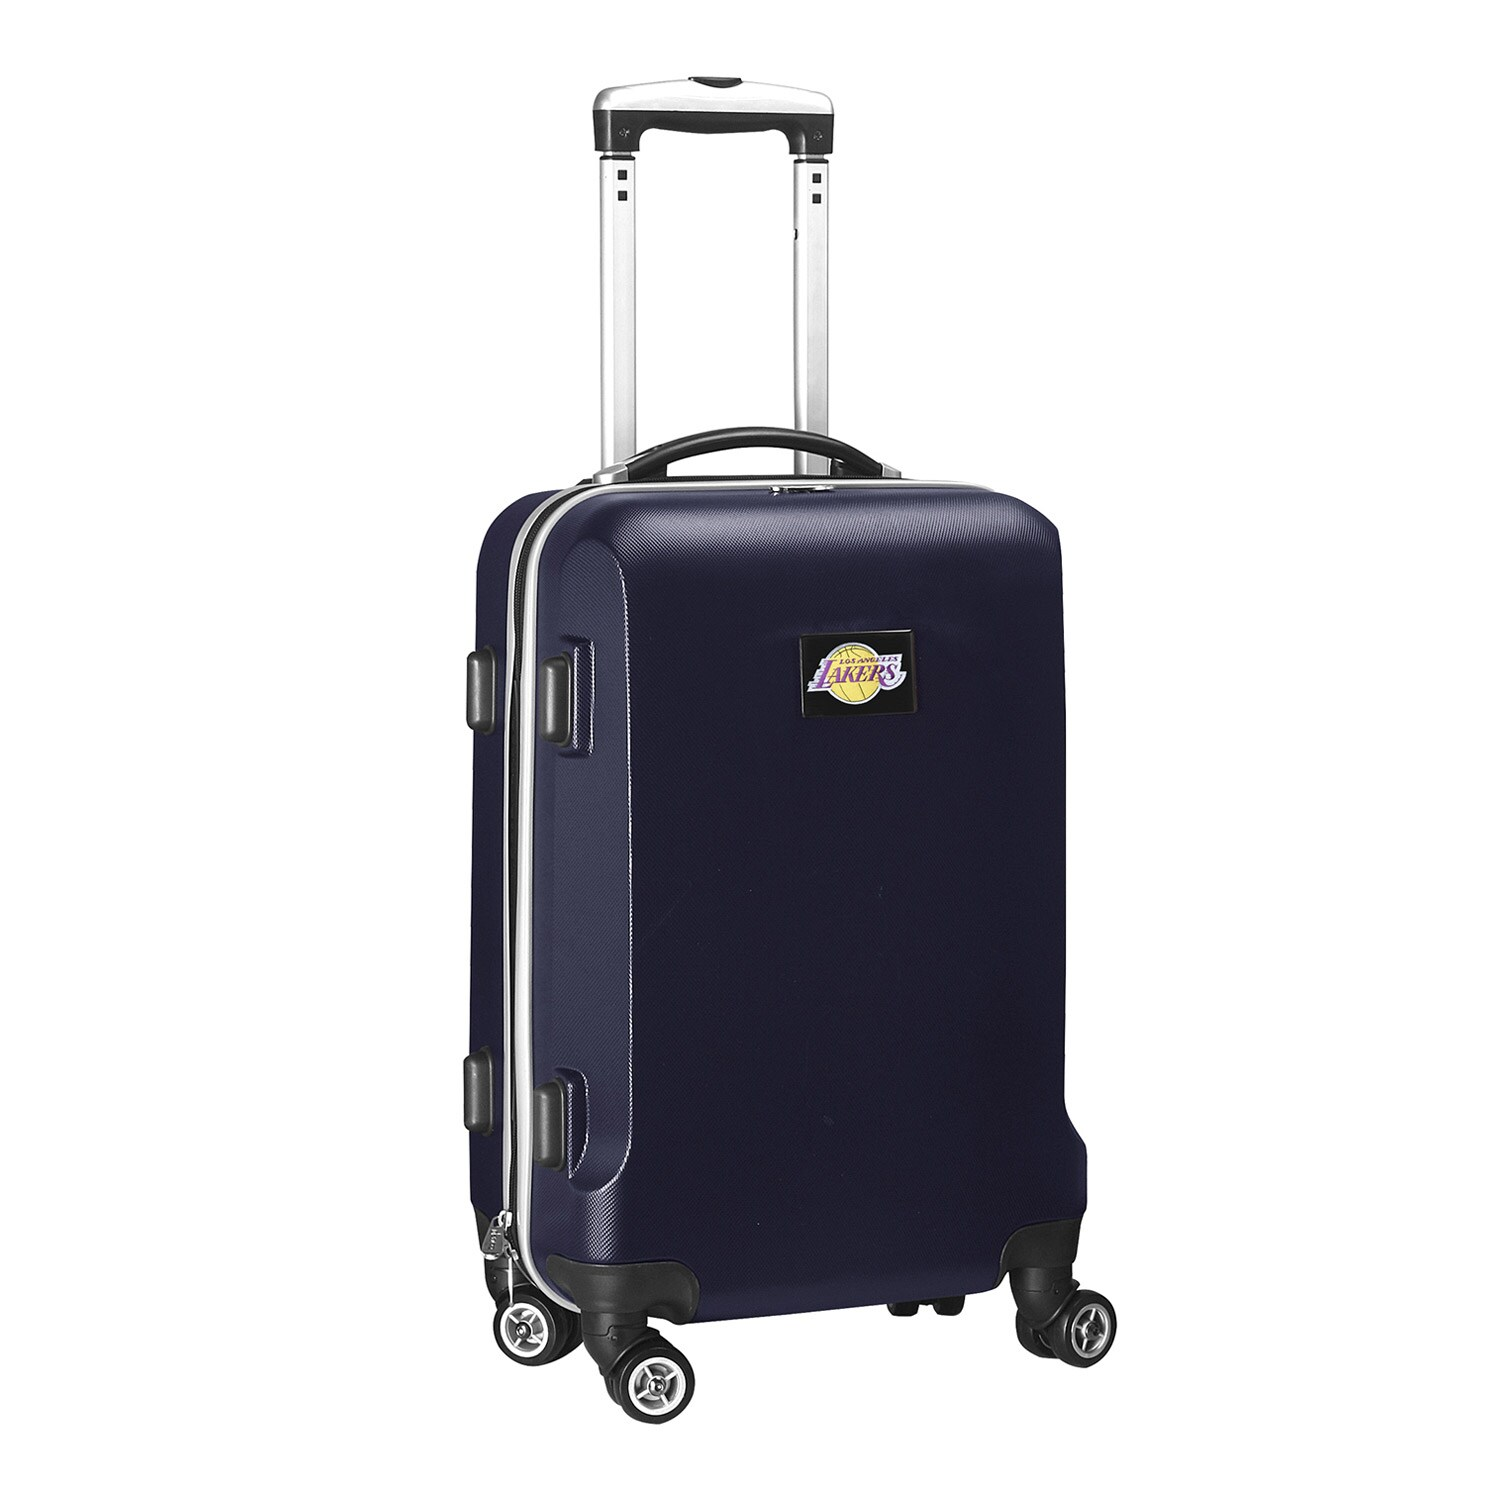 "Los Angeles Lakers 20"" 8-Wheel Hardcase Spinner Carry-On - Navy"